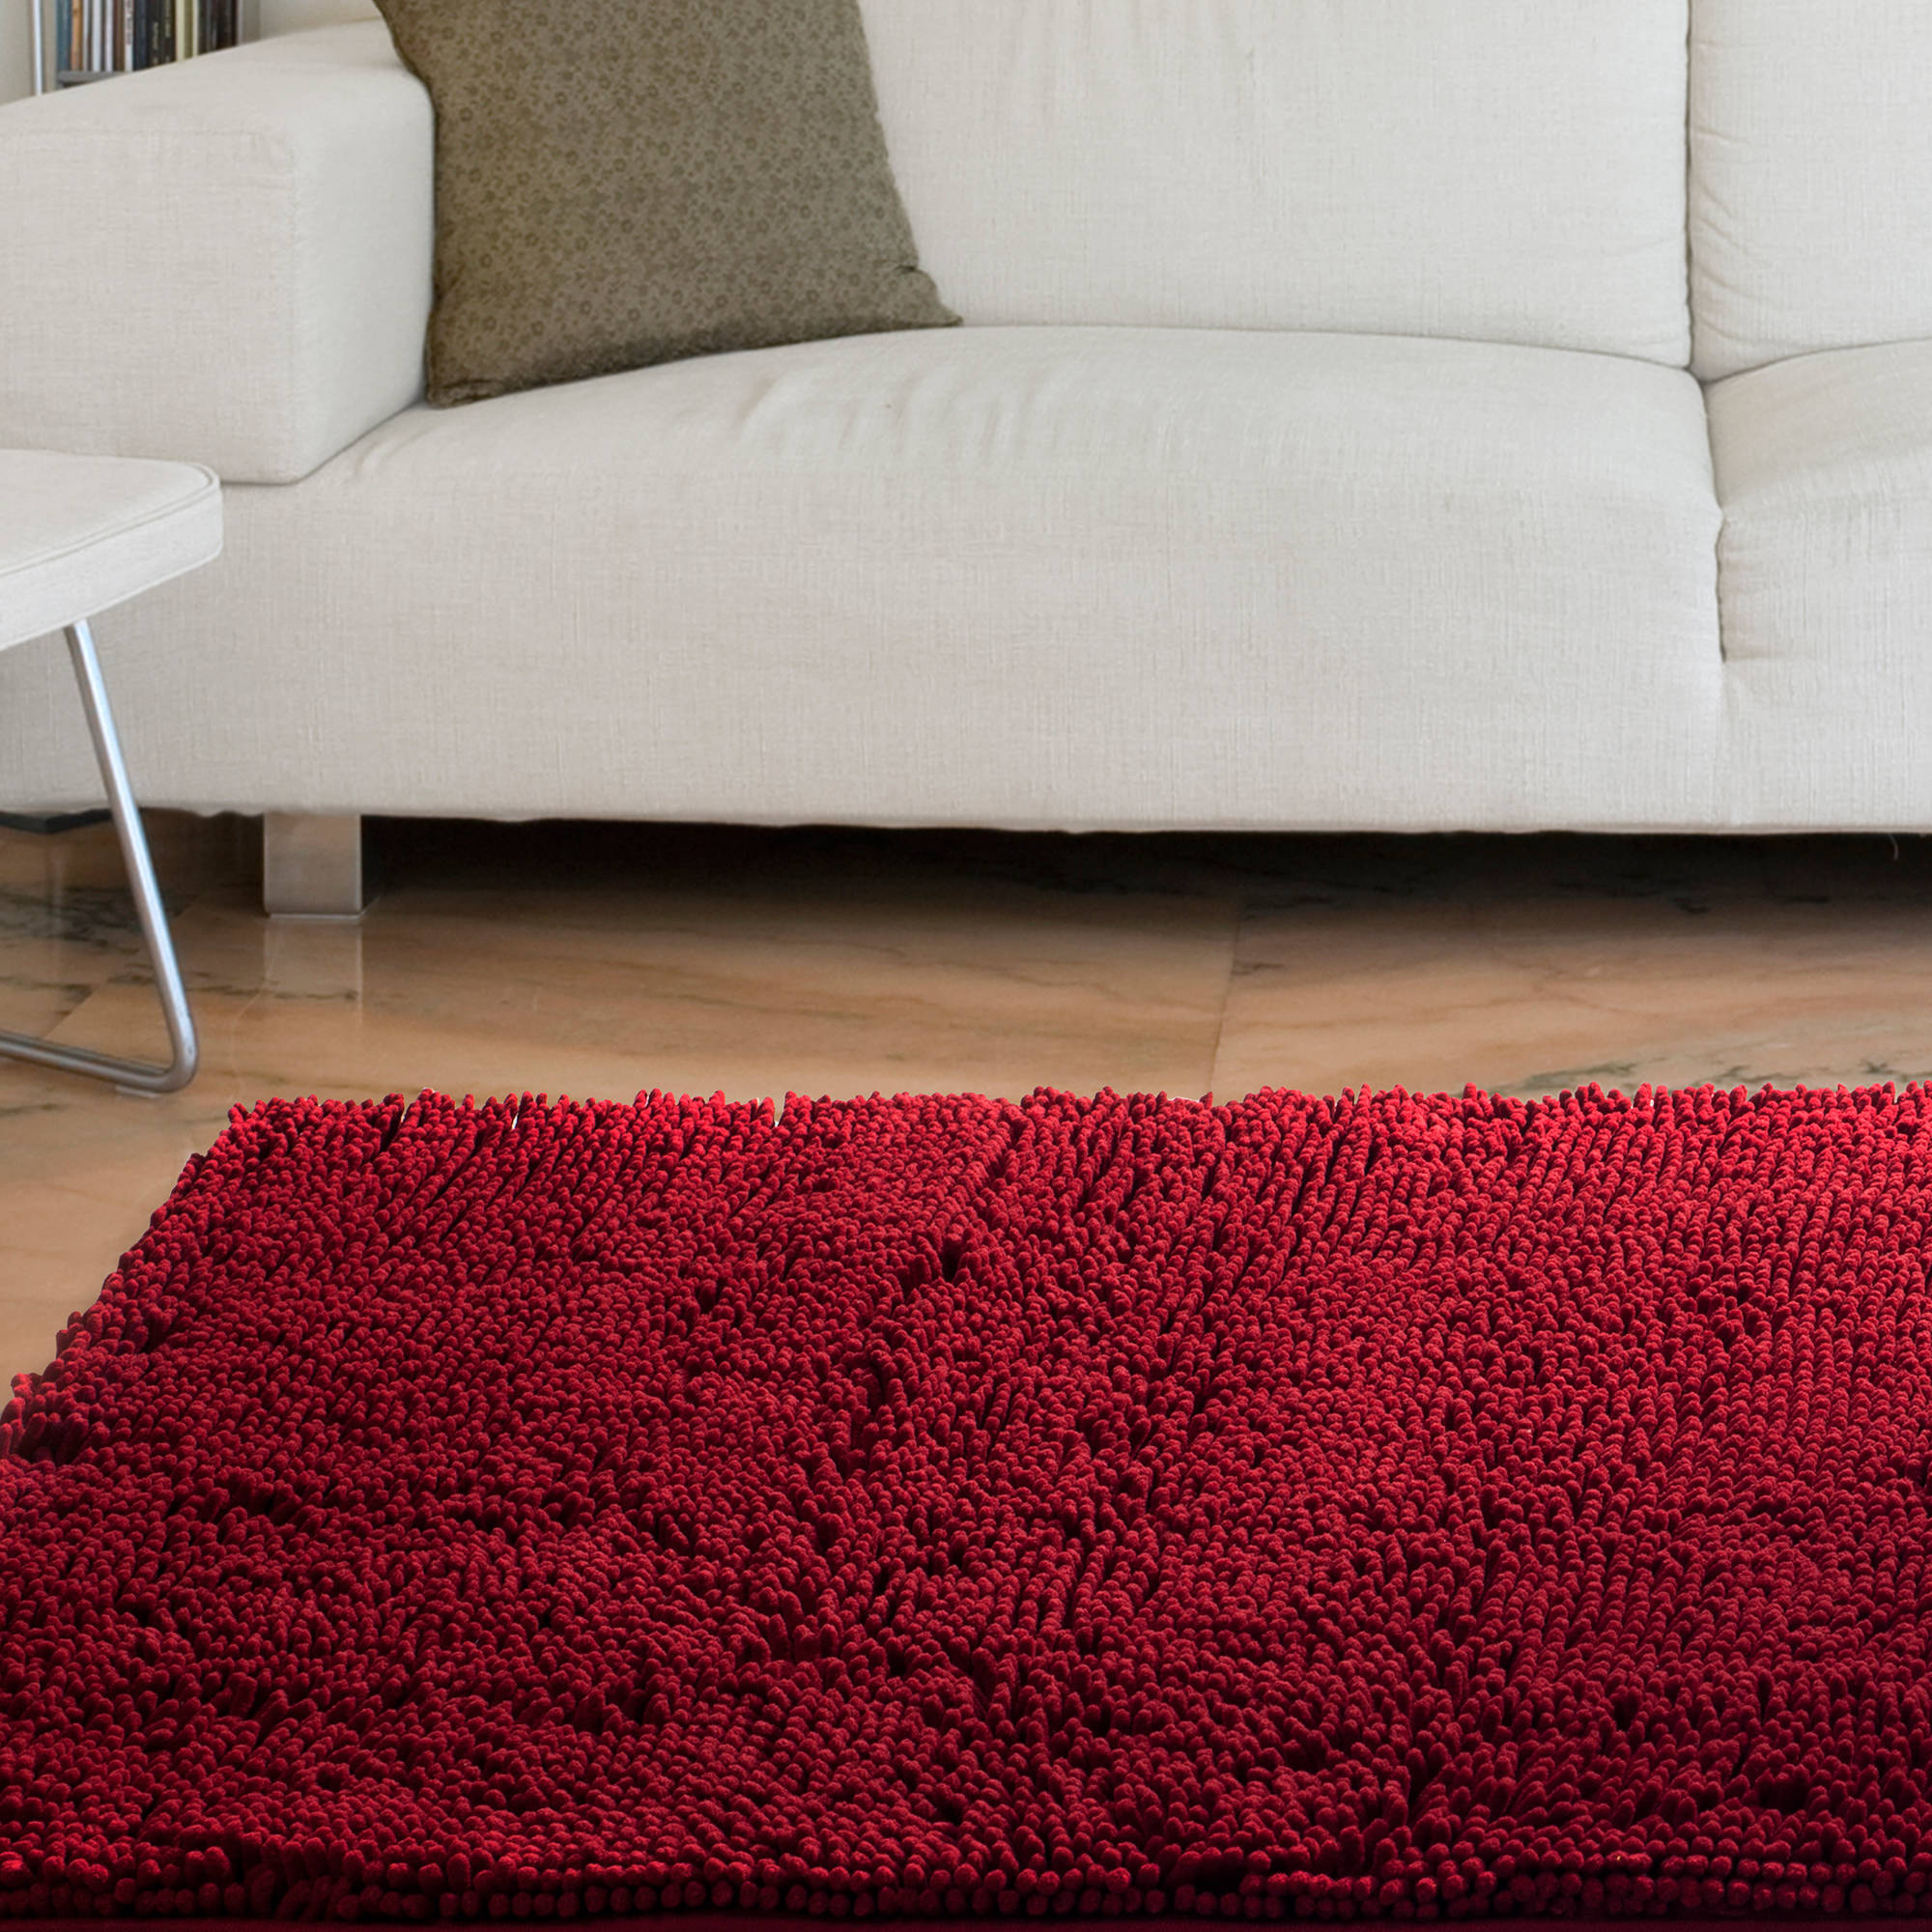 "Somerset Home High Pile Shag Rug Carpet, Burgundy, 21"" x 36"""